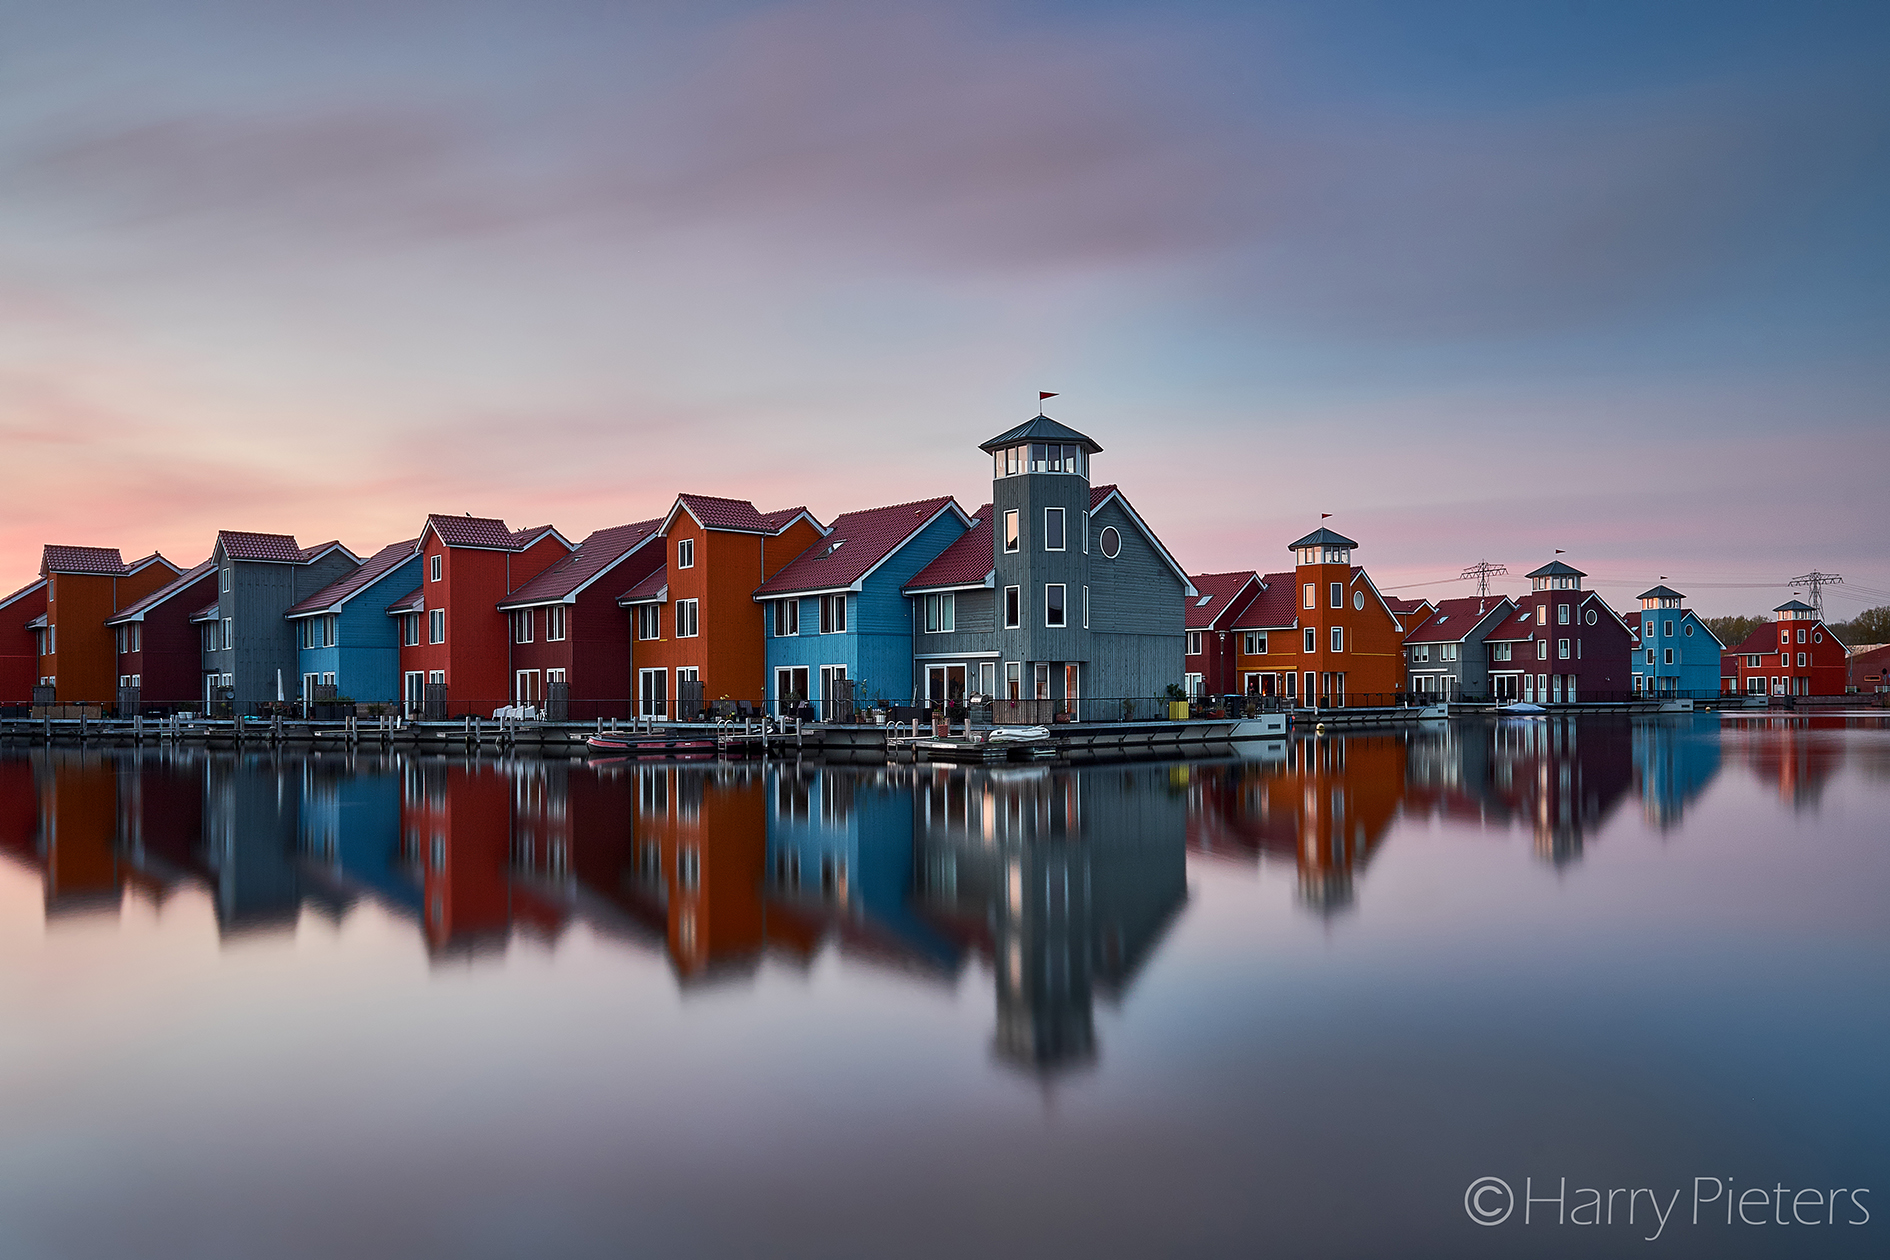 Colourful houses at Reitdiephaven, Netherlands